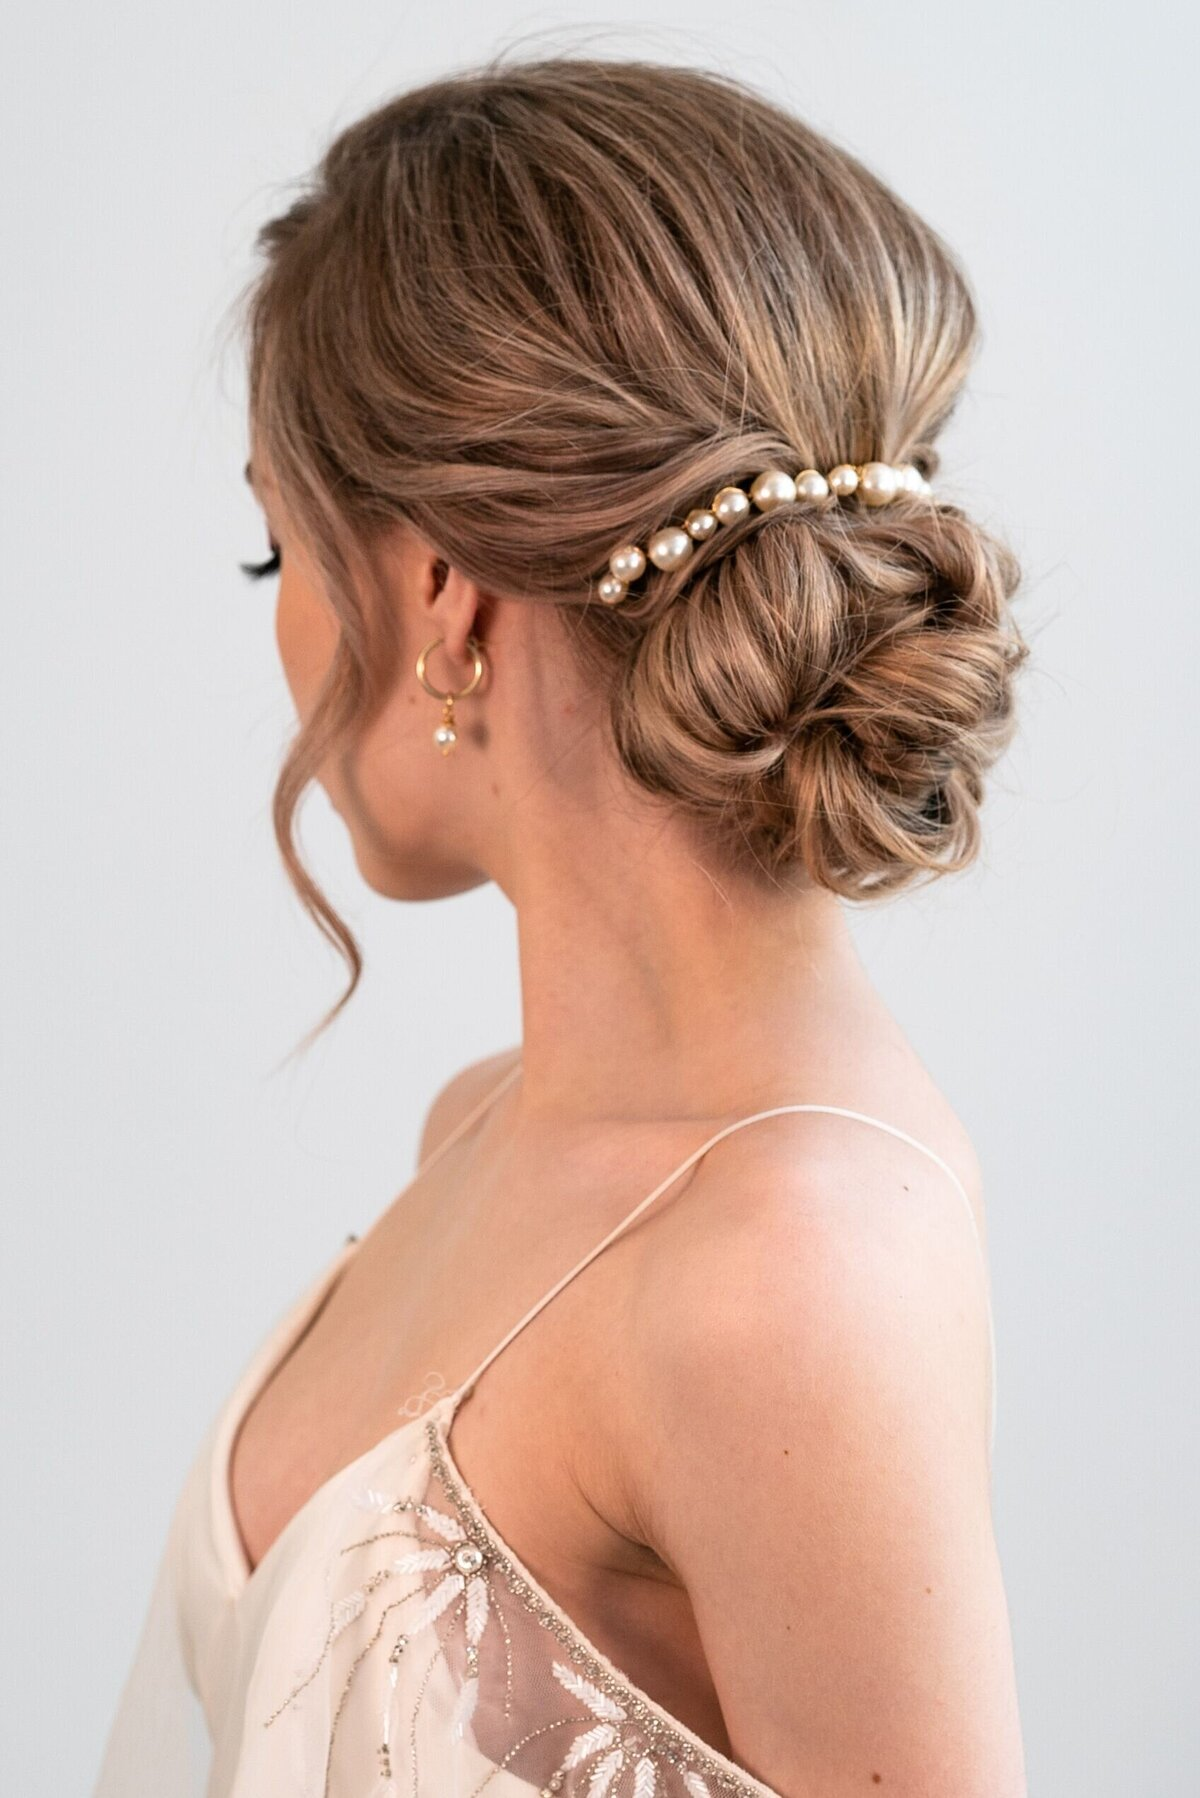 Bride wearing Pearl Comb by Joanna Bisley Designs